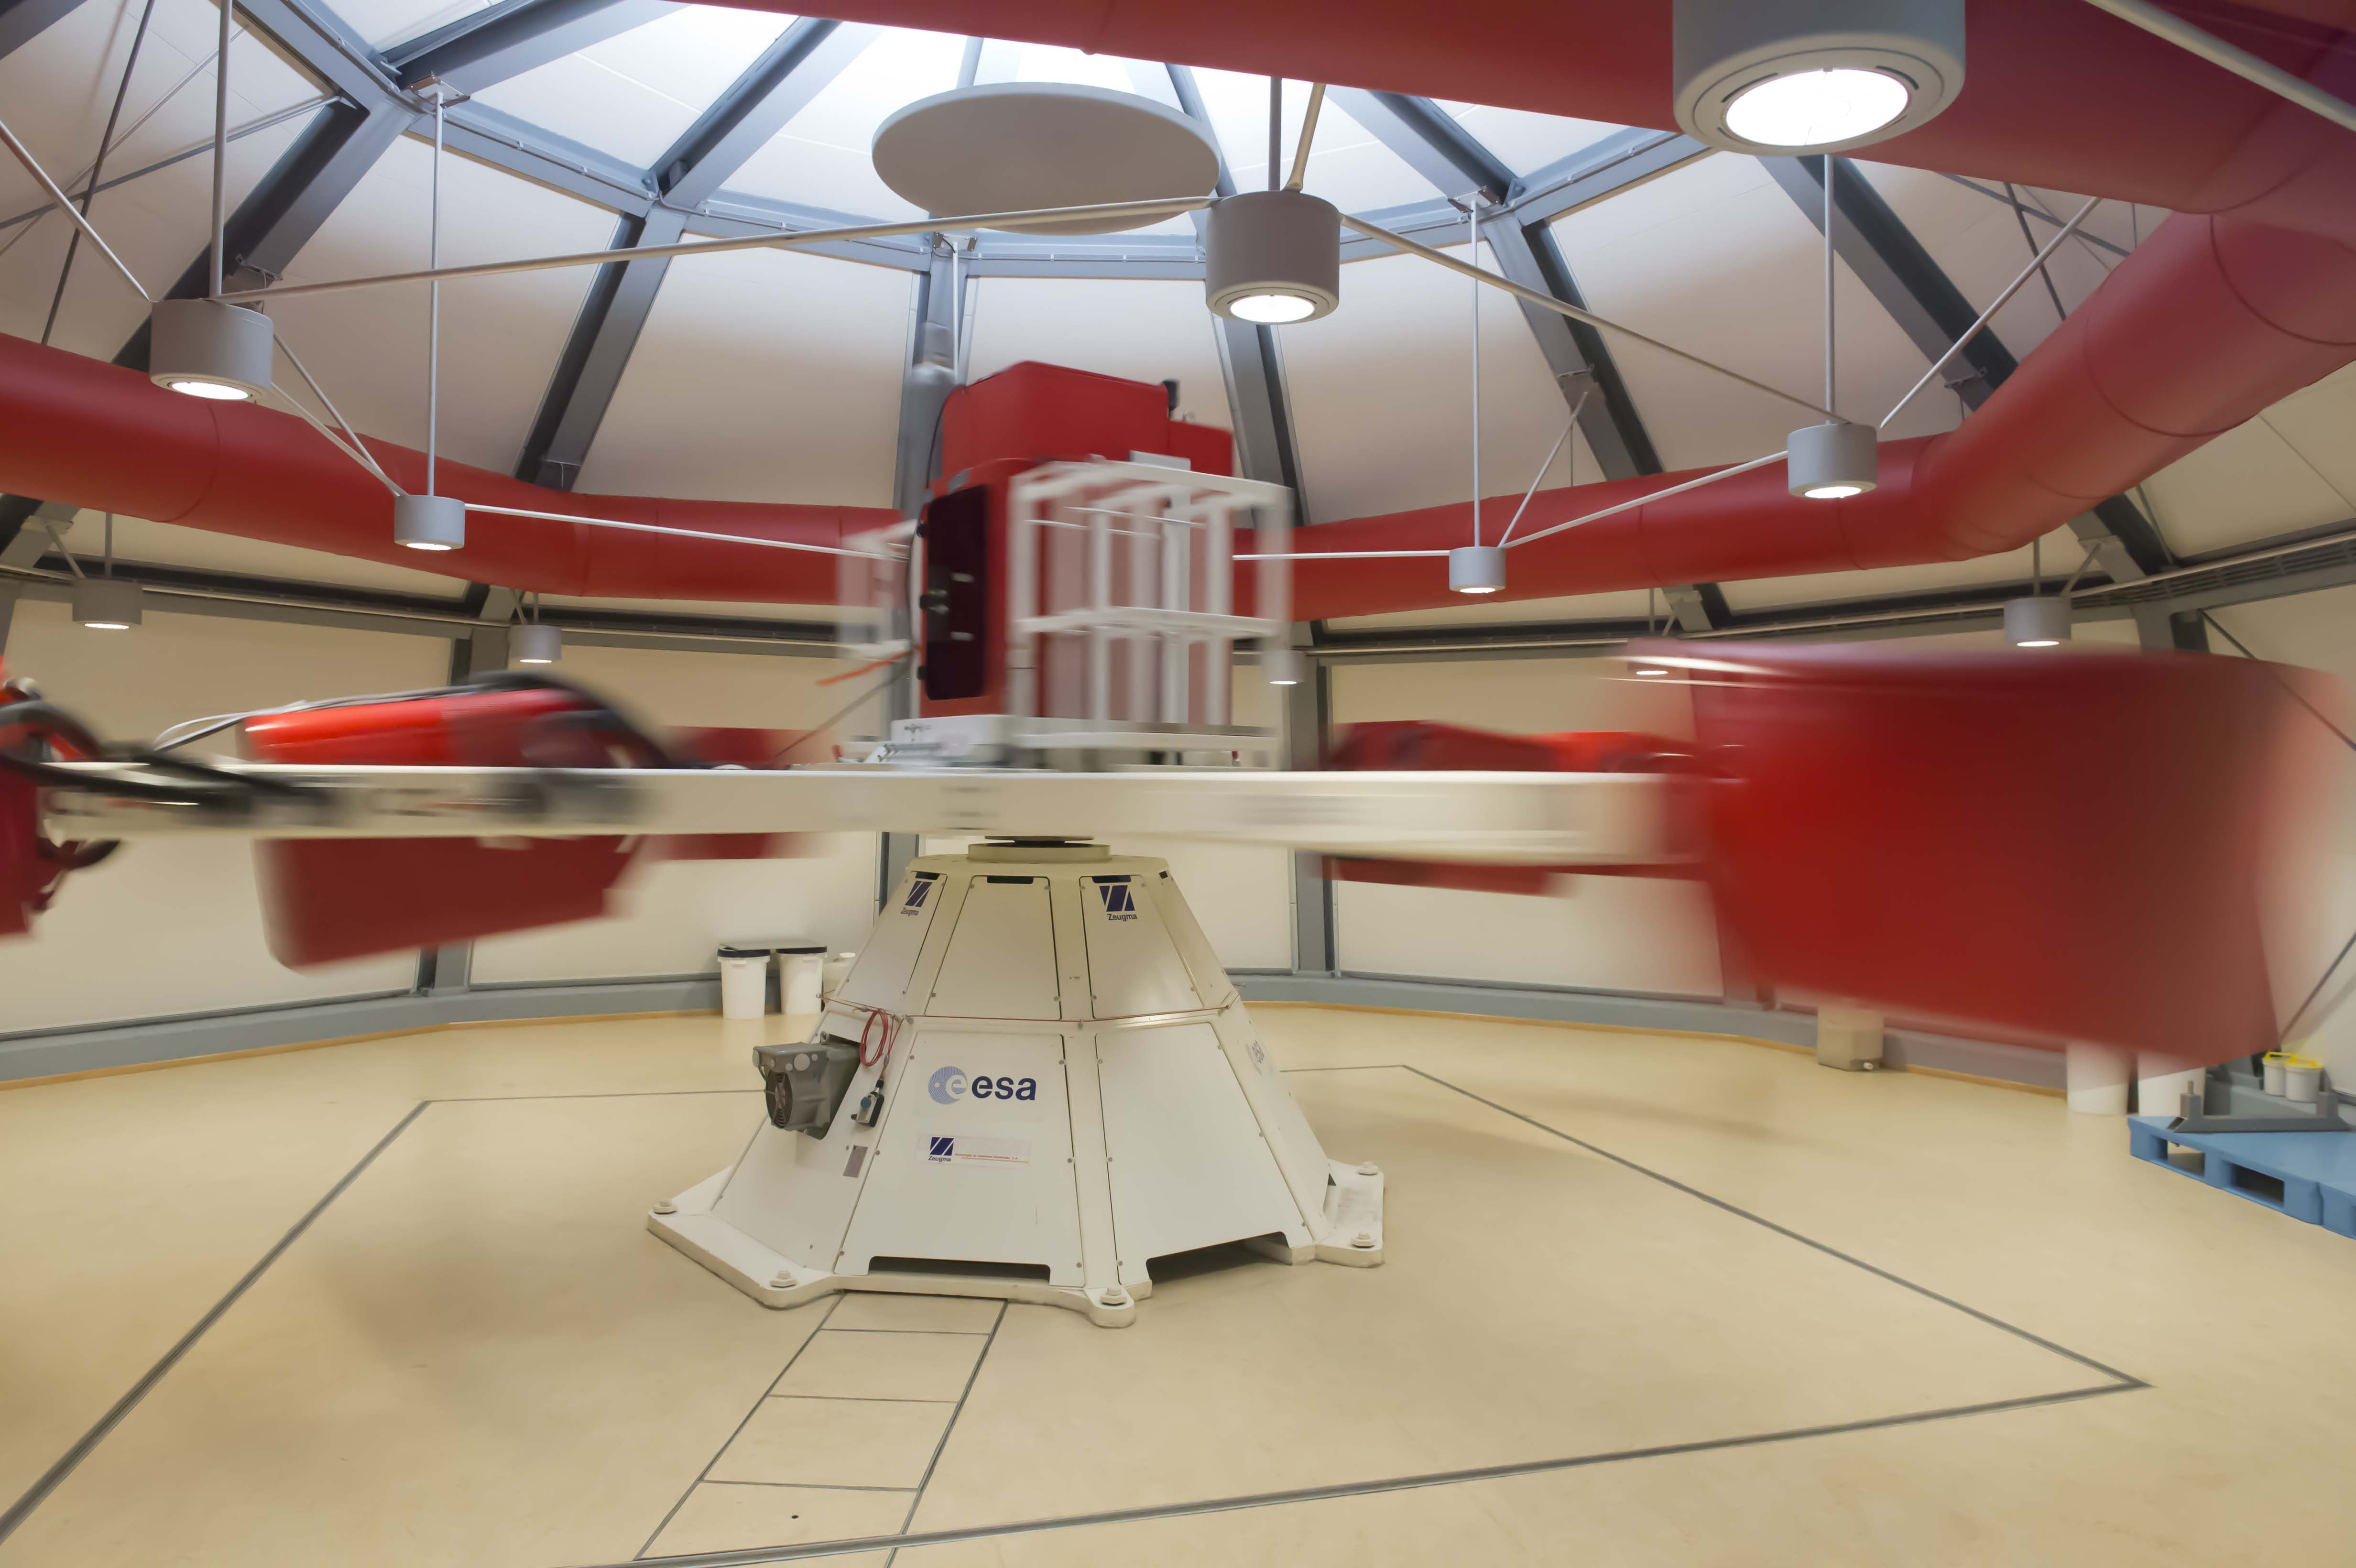 Space in Images - 2014 - 10 - Large Diameter Centrifuge